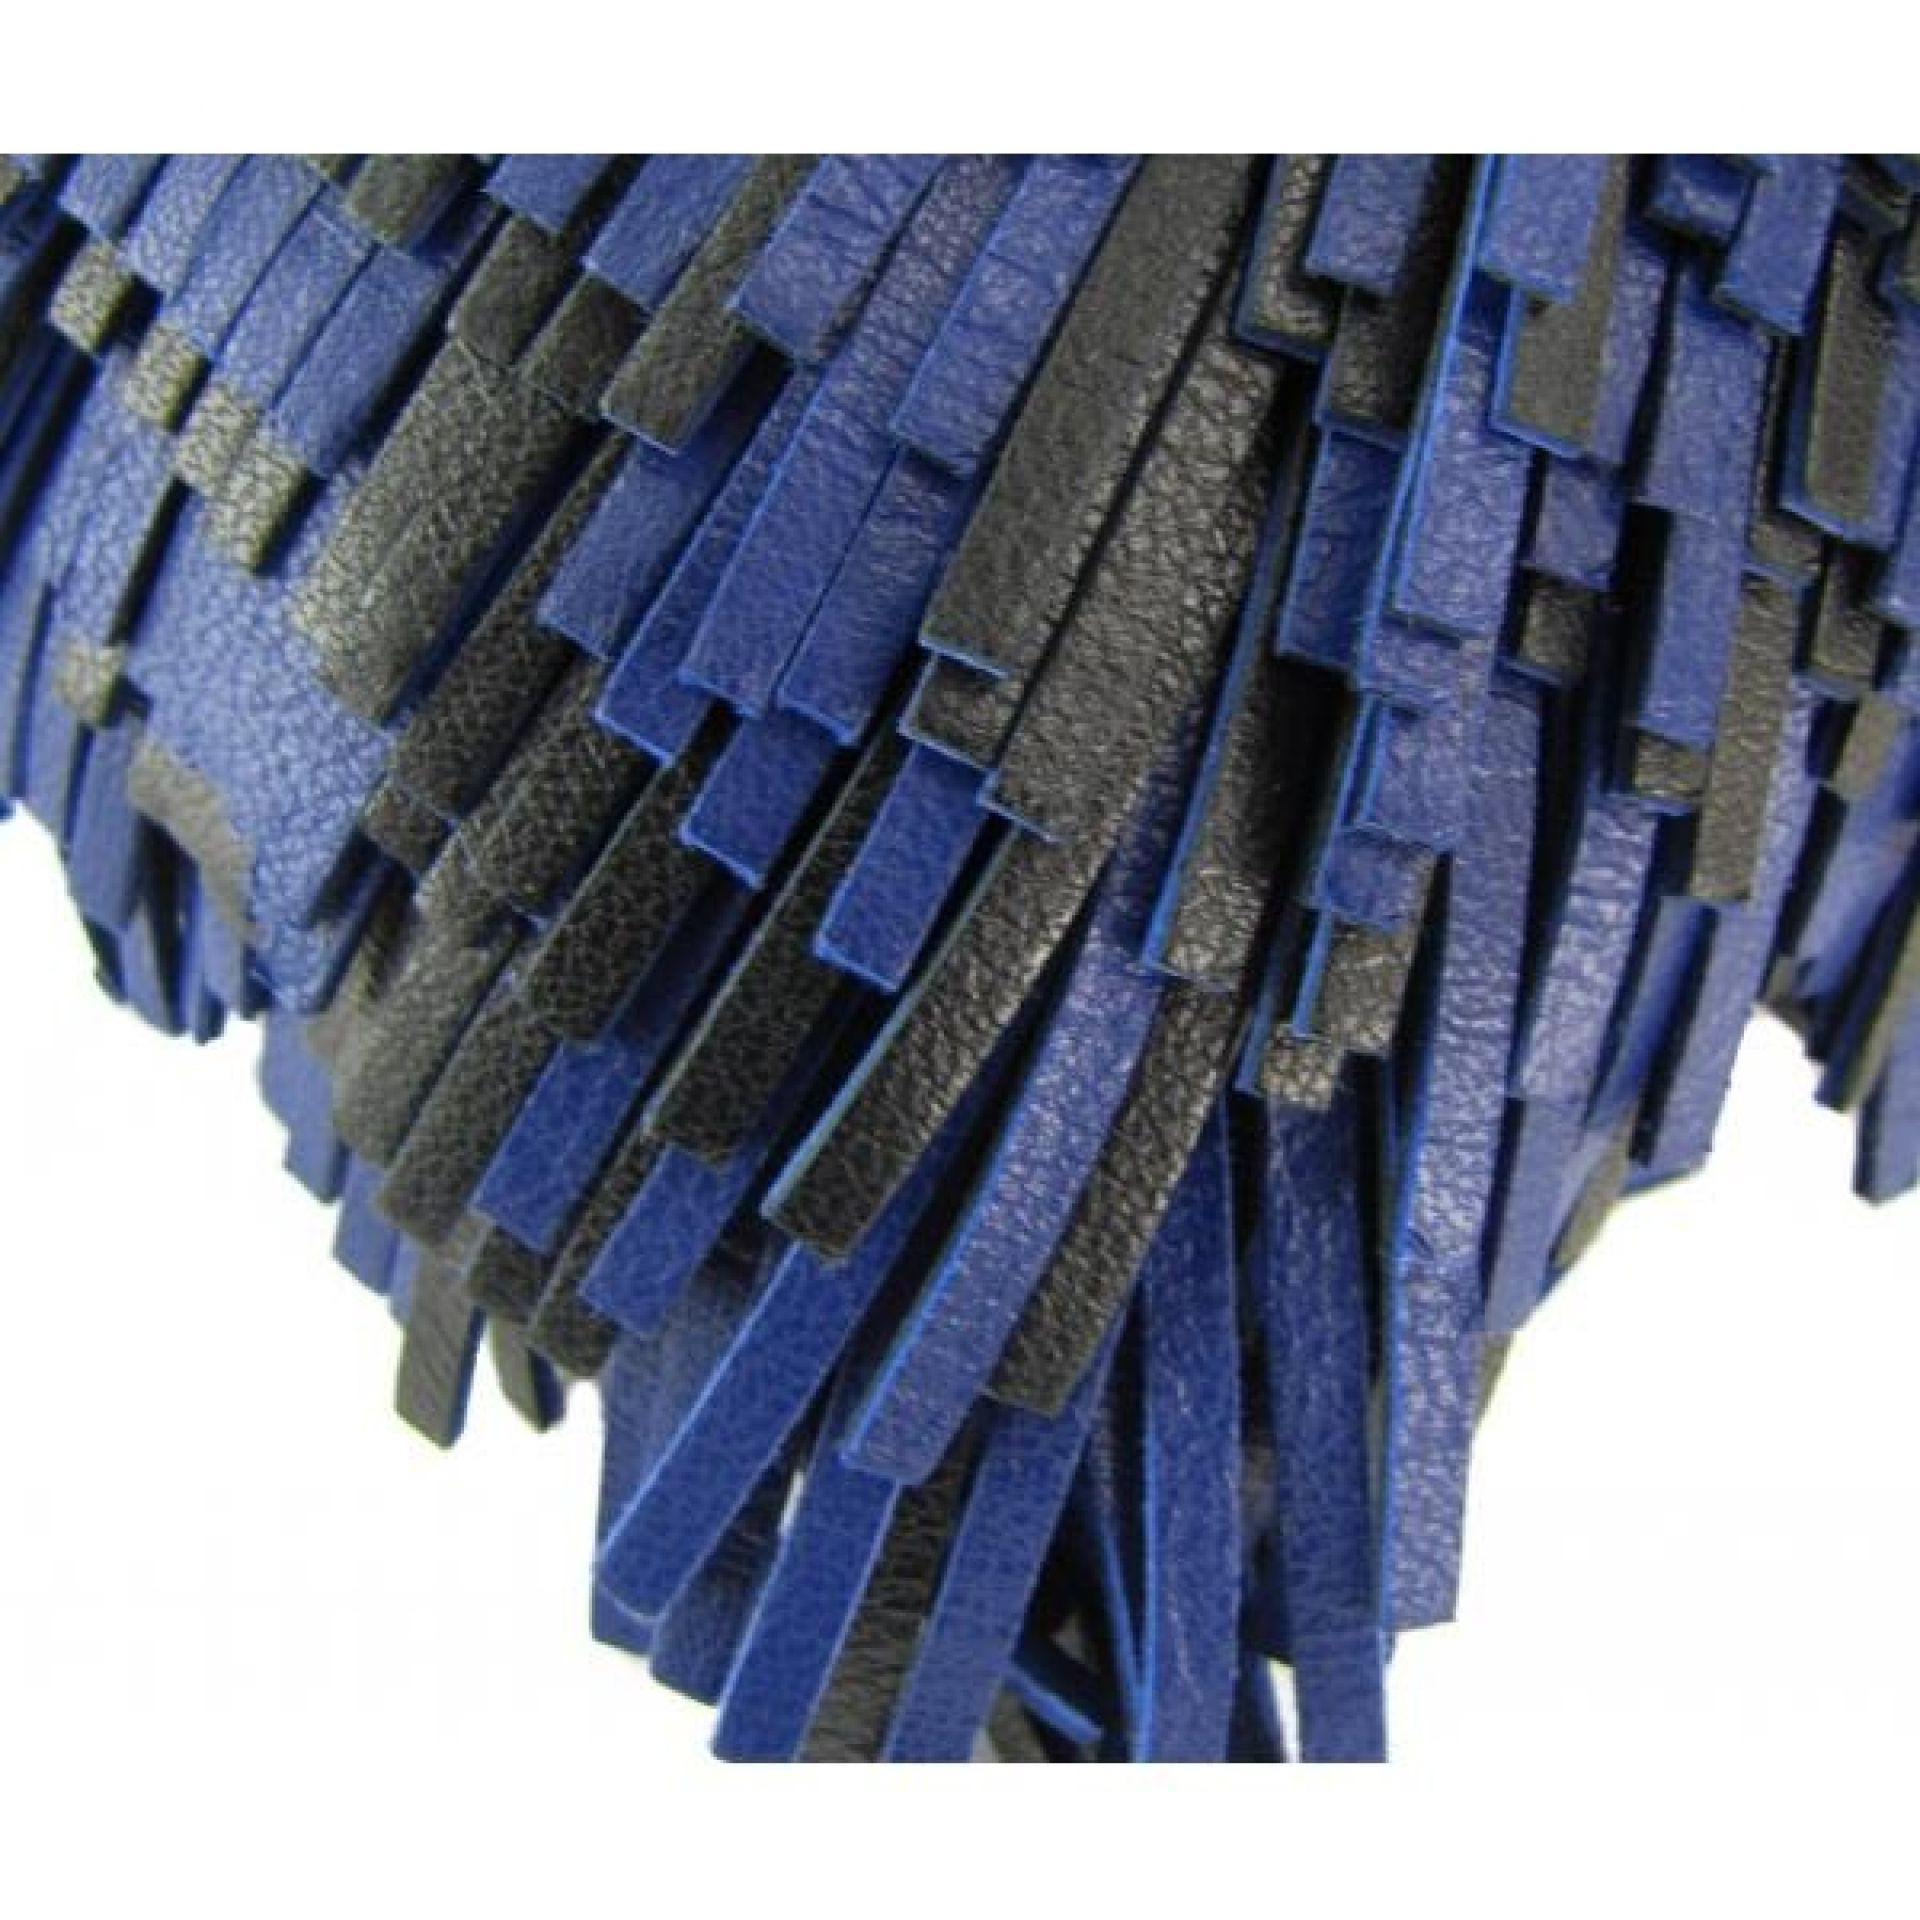 Proenza Schouler Blue and Black Leather Fringe Chain Clutch Bag